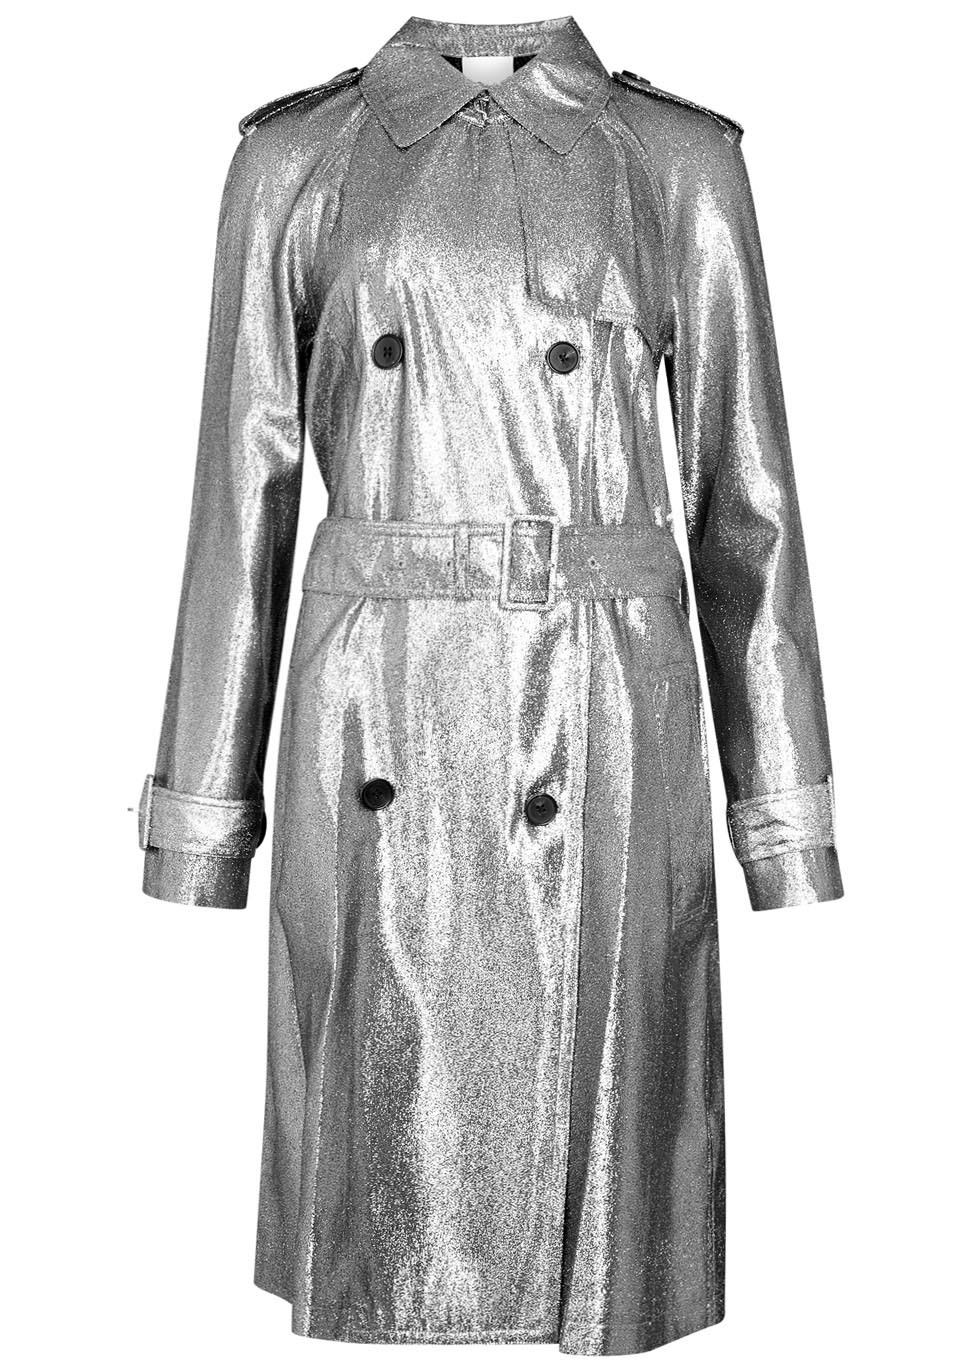 Silver Lamé Trench Coat - pattern: plain; style: cape; length: mid thigh; predominant colour: silver; occasions: casual, creative work; fit: tailored/fitted; fibres: viscose/rayon - stretch; collar: shirt collar/peter pan/zip with opening; waist detail: belted waist/tie at waist/drawstring; sleeve length: long sleeve; sleeve style: standard; texture group: technical outdoor fabrics; collar break: high; pattern type: fabric; pattern size: standard; season: a/w 2016; wardrobe: highlight